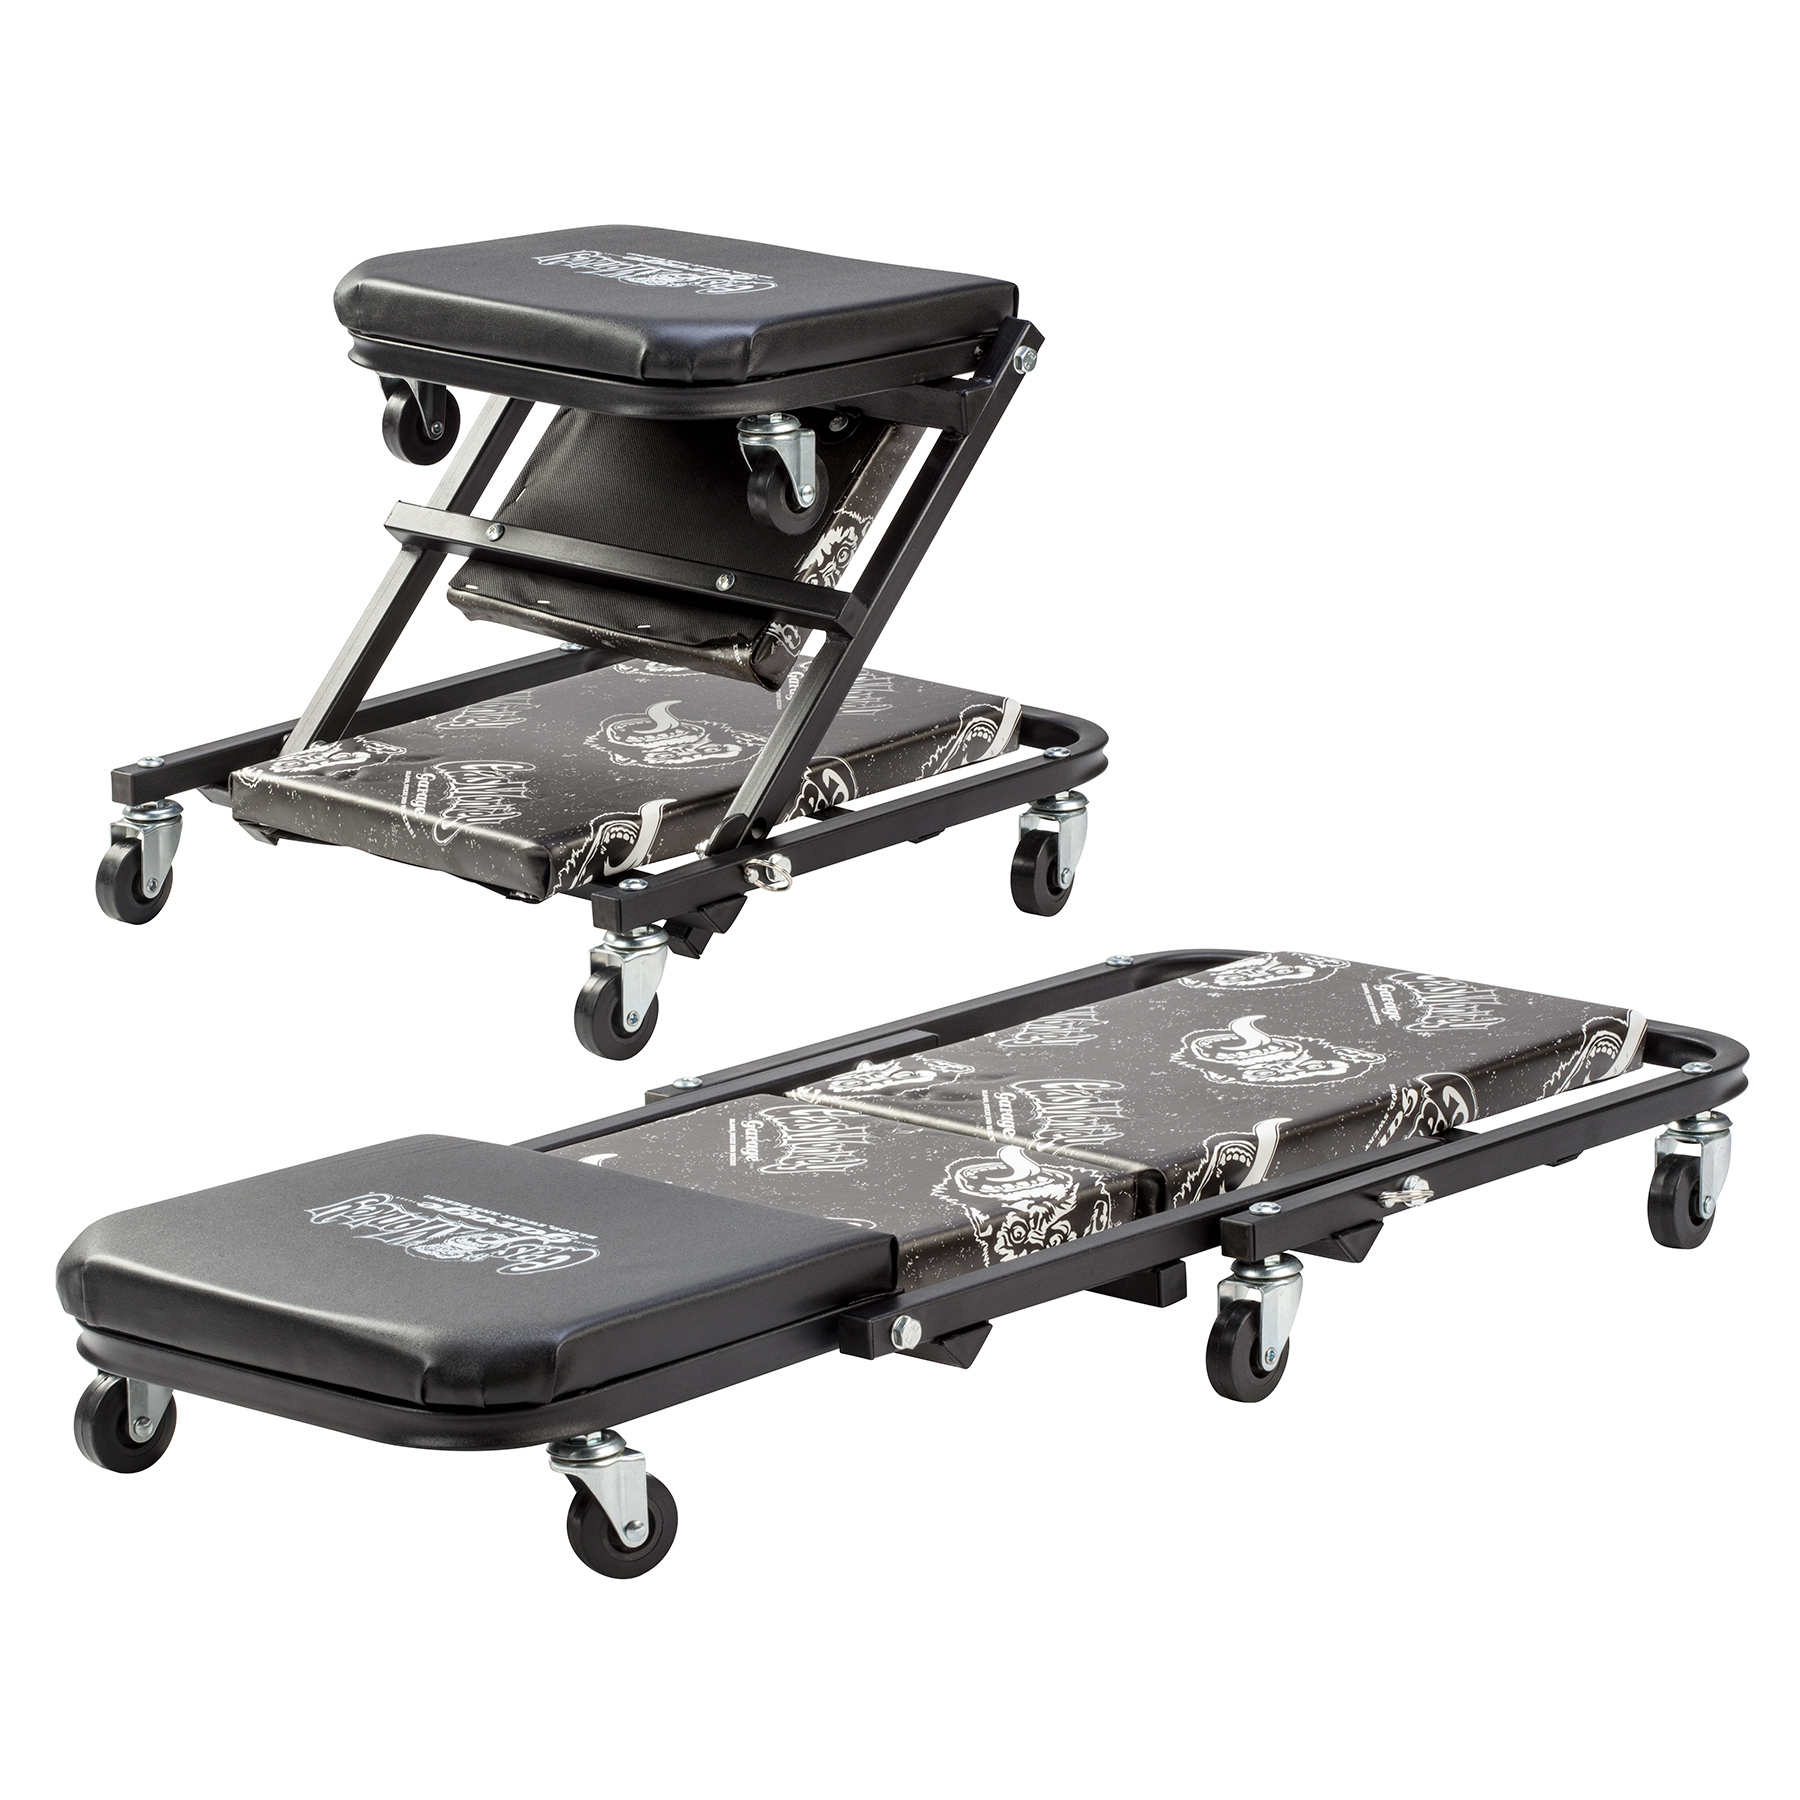 Gas Monkey Garage Z Creeper Mechanic Seat - Six Rolling Casters with 300 Lbs Capacity for Automotive Car Garage